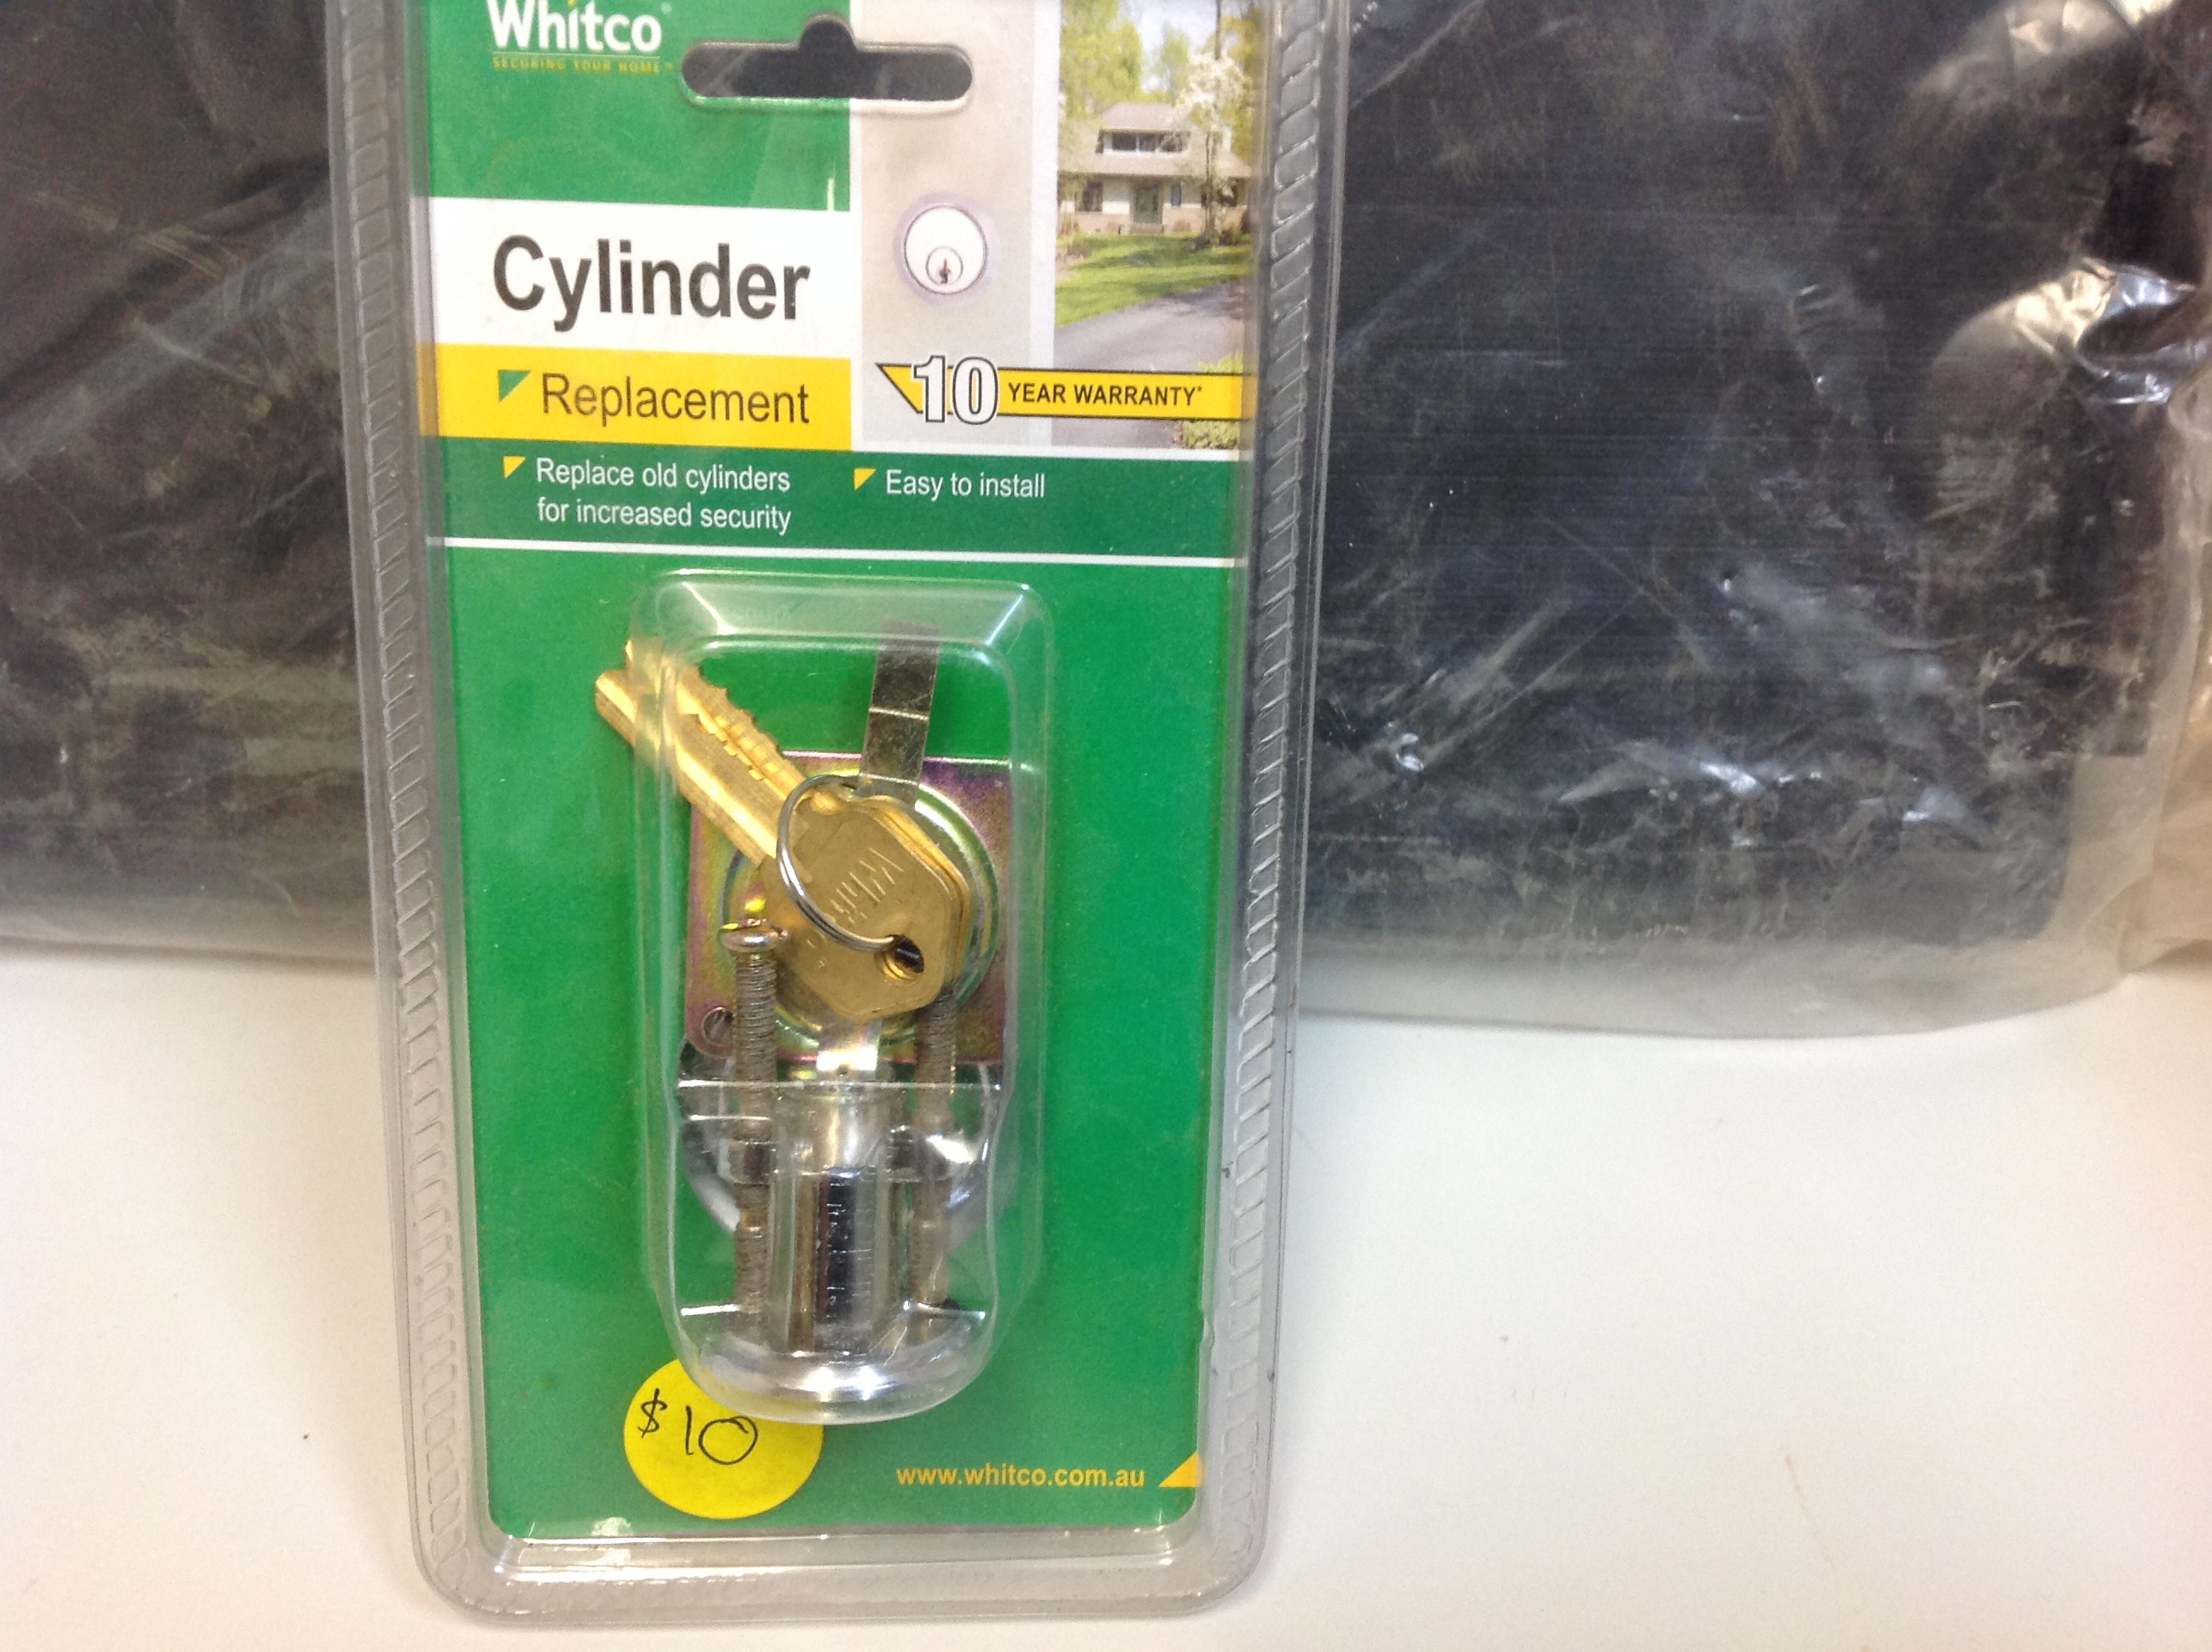 Whitco Replacement Cylinder Door Lock Neerim South 2nd Hand Store